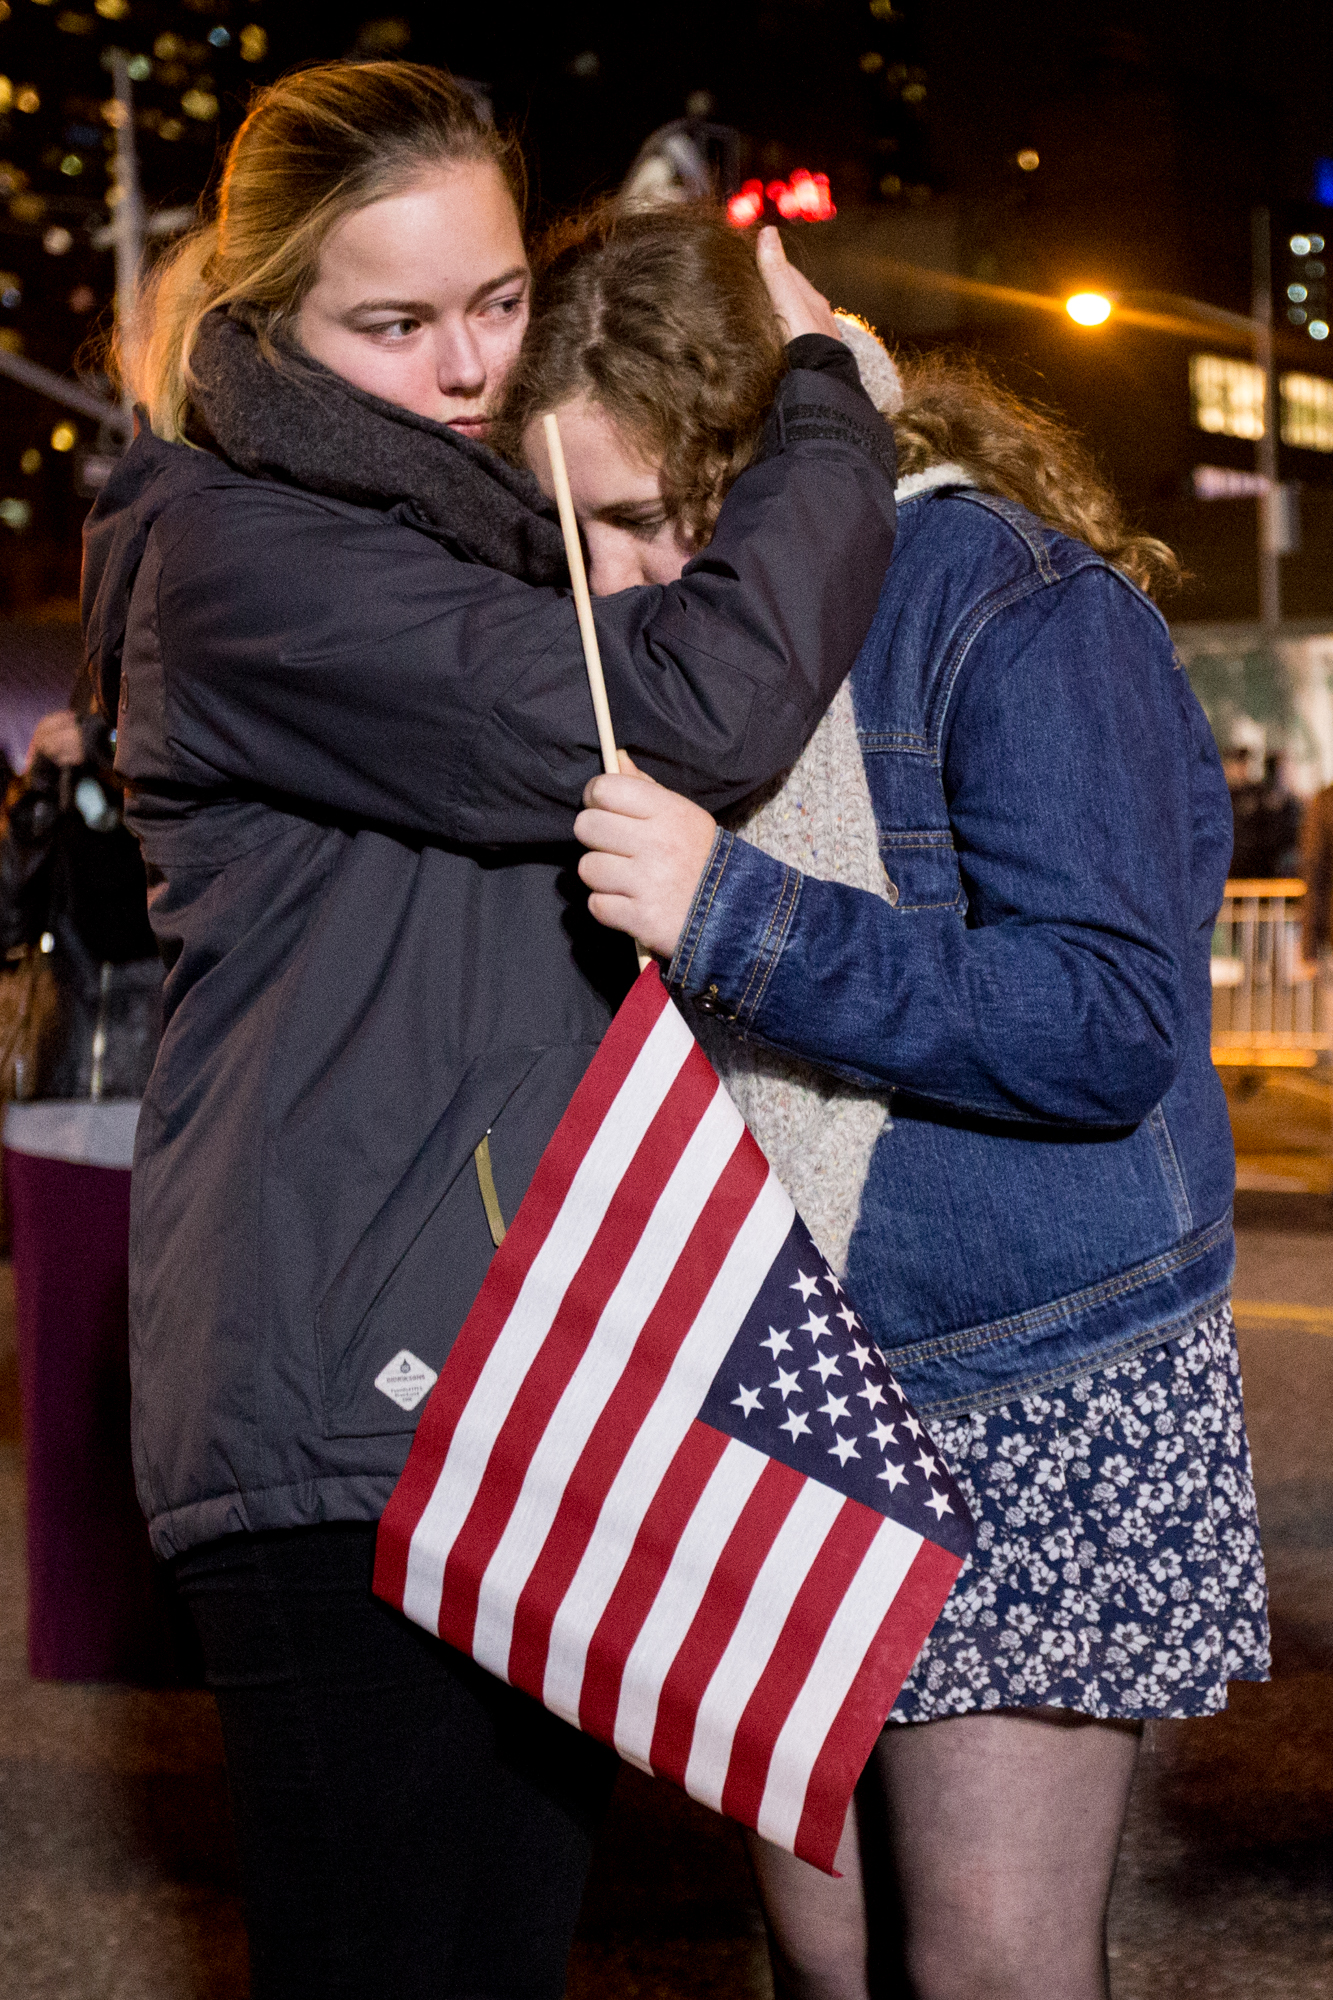 Supporters comfort each other around 1 a.m. while waiting to find out if Clinton will give a concession speech that night. Though the venue emptied some, about 100 supporters still waited outside the Jacob K. Javits Convention Center Until about 2 a.m on Nov. 9, 2106.